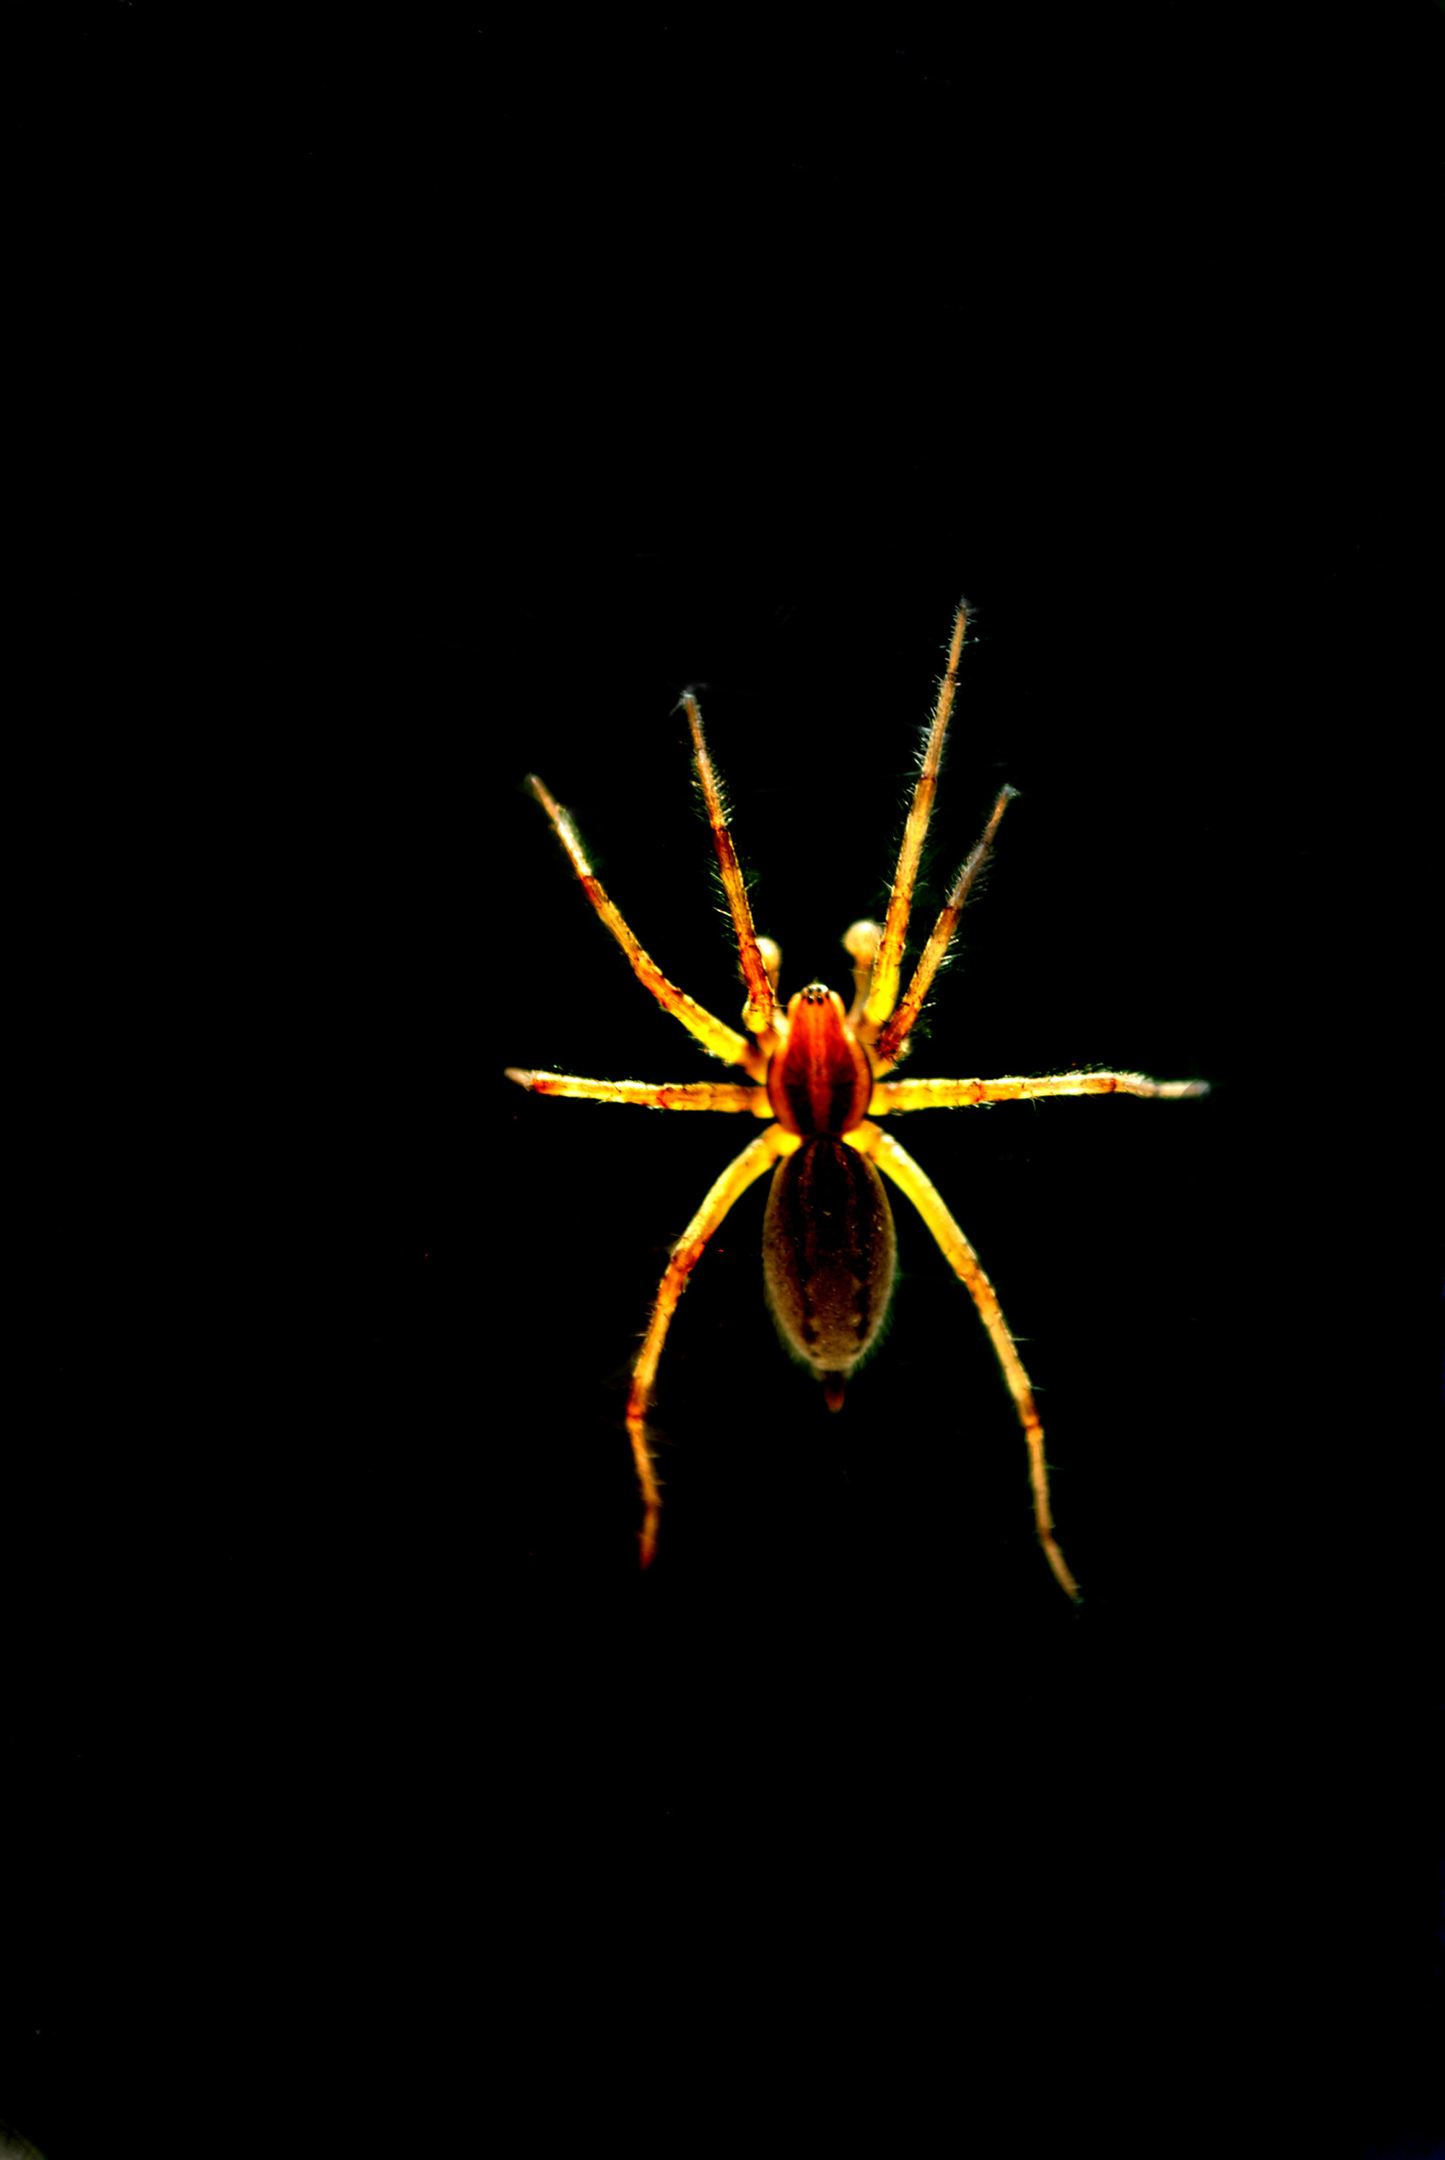 Giant spiders like this one could be coming to your home soon